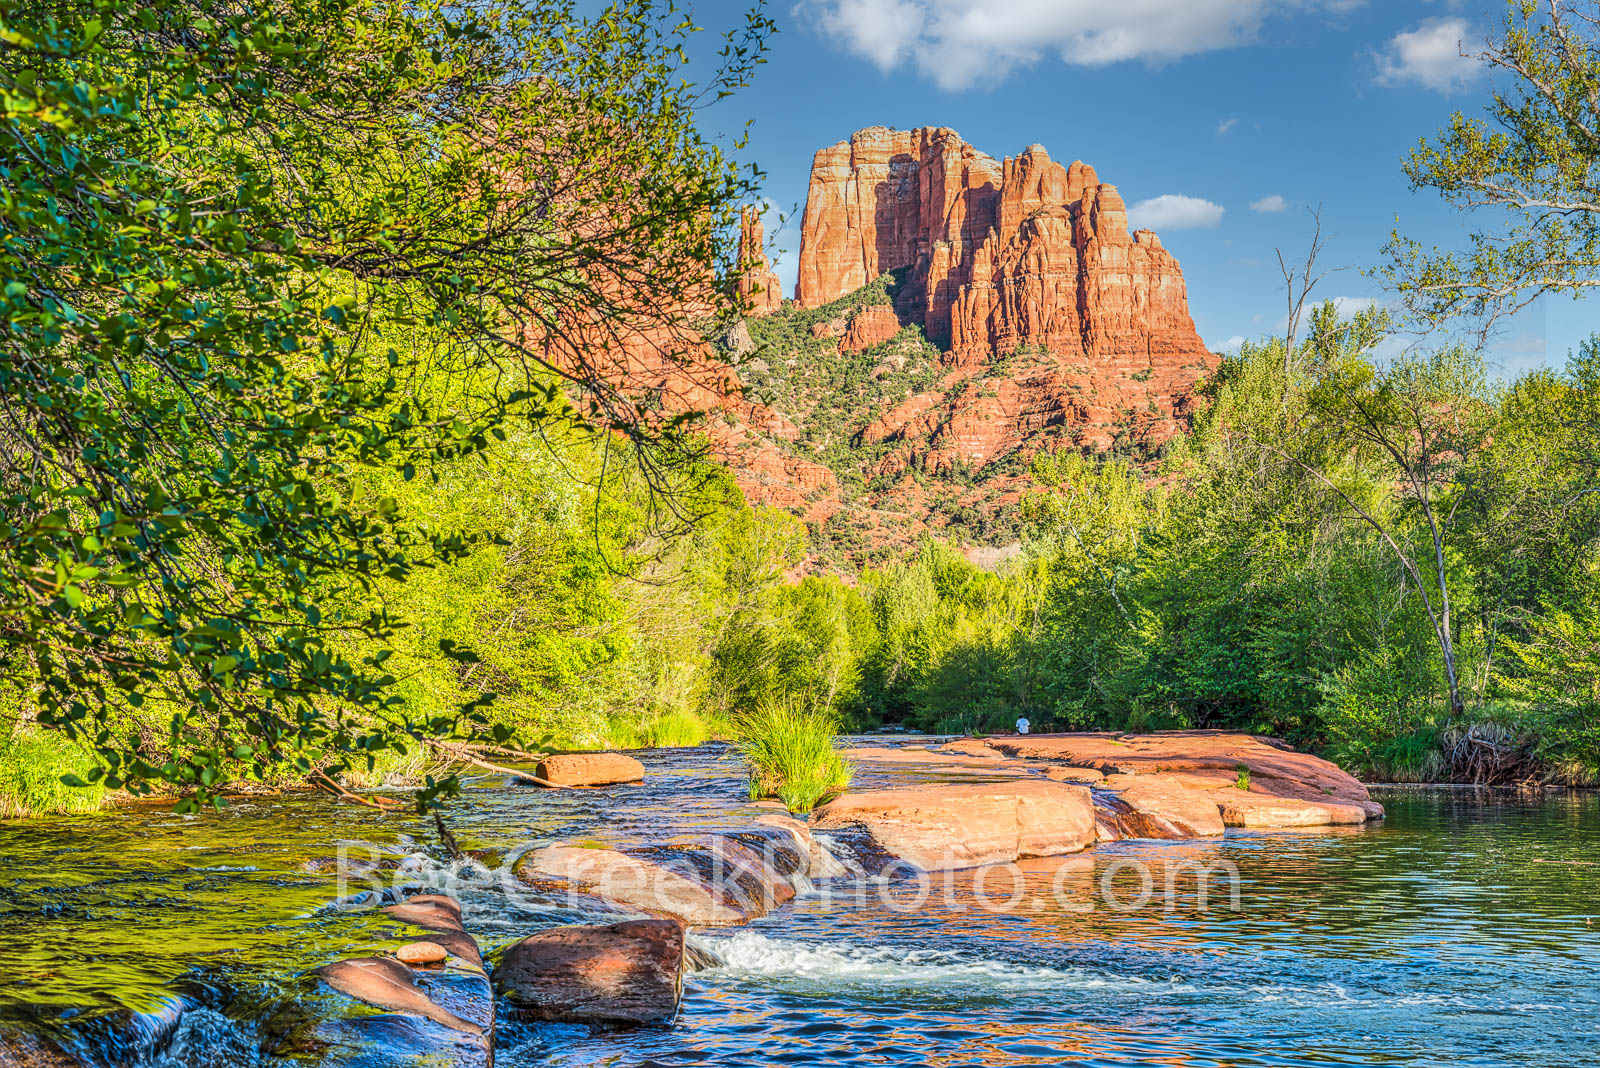 Oak Creek Crossing and Cathedral Rock  - Oak Creek with Cathedral Rock in the background as the creek flows over the red rocks...